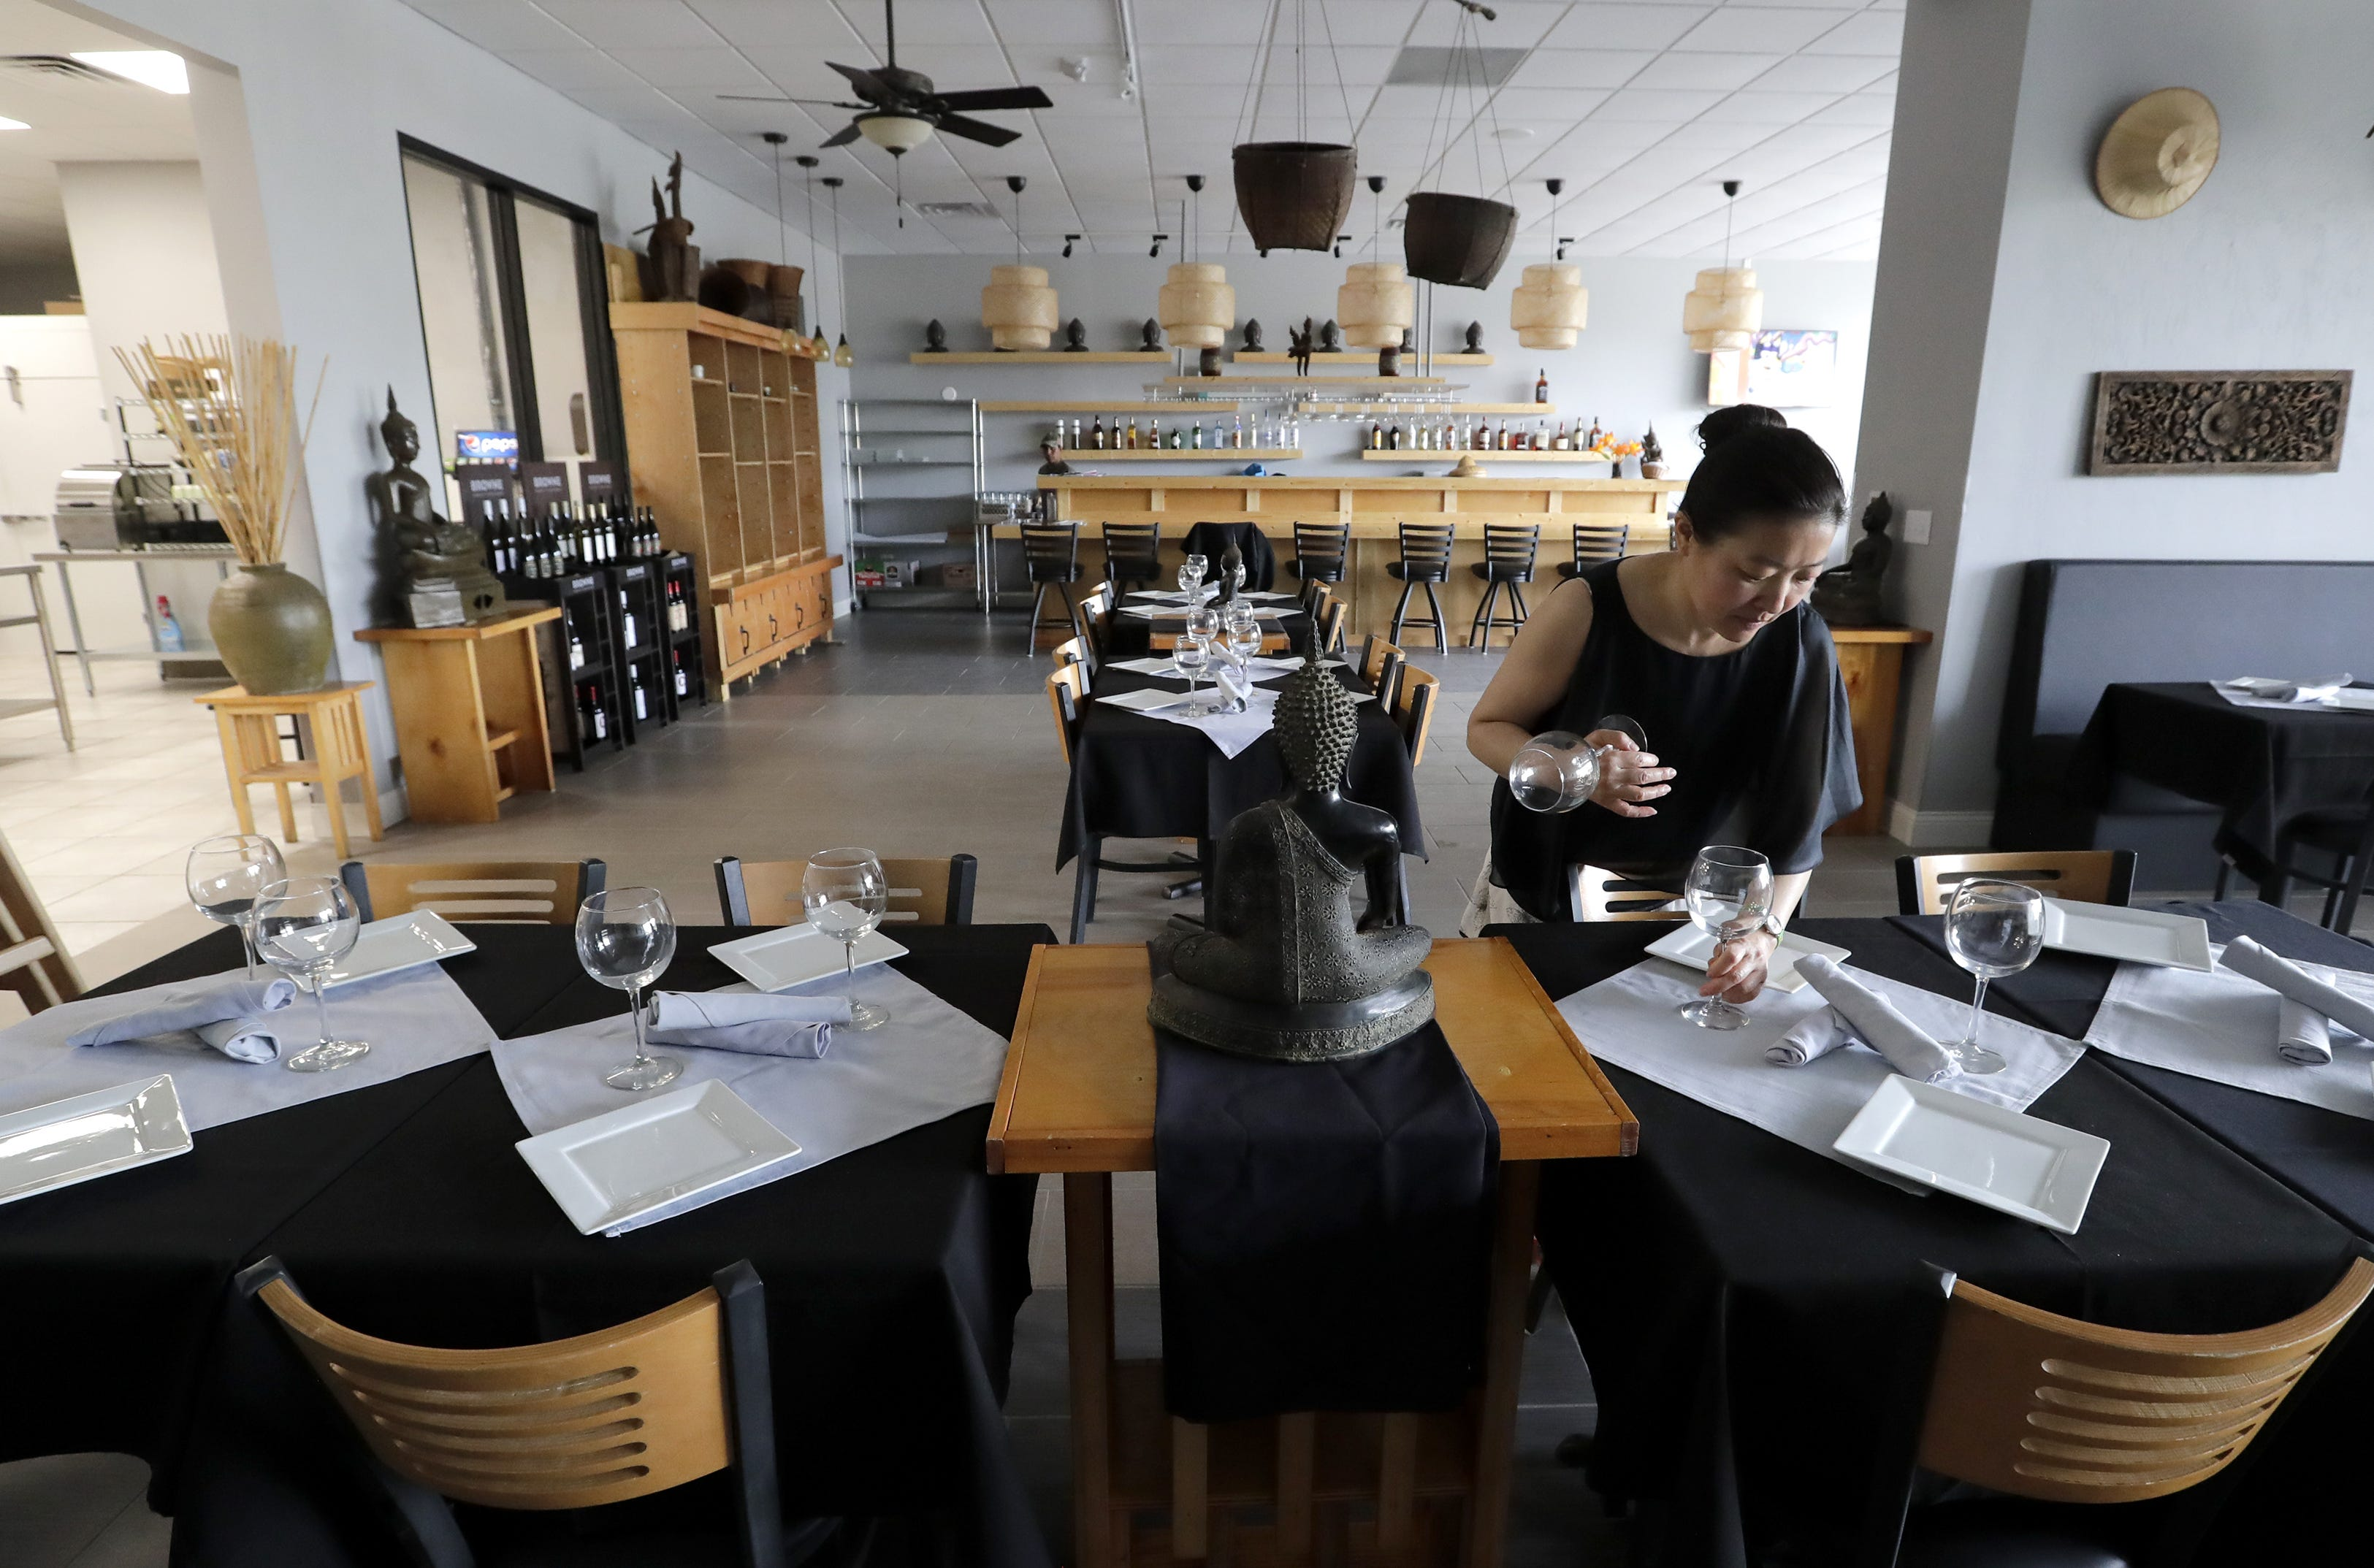 The Buzz Appleton S Thai Ginger Bistro Overcomes Obstacles To Open